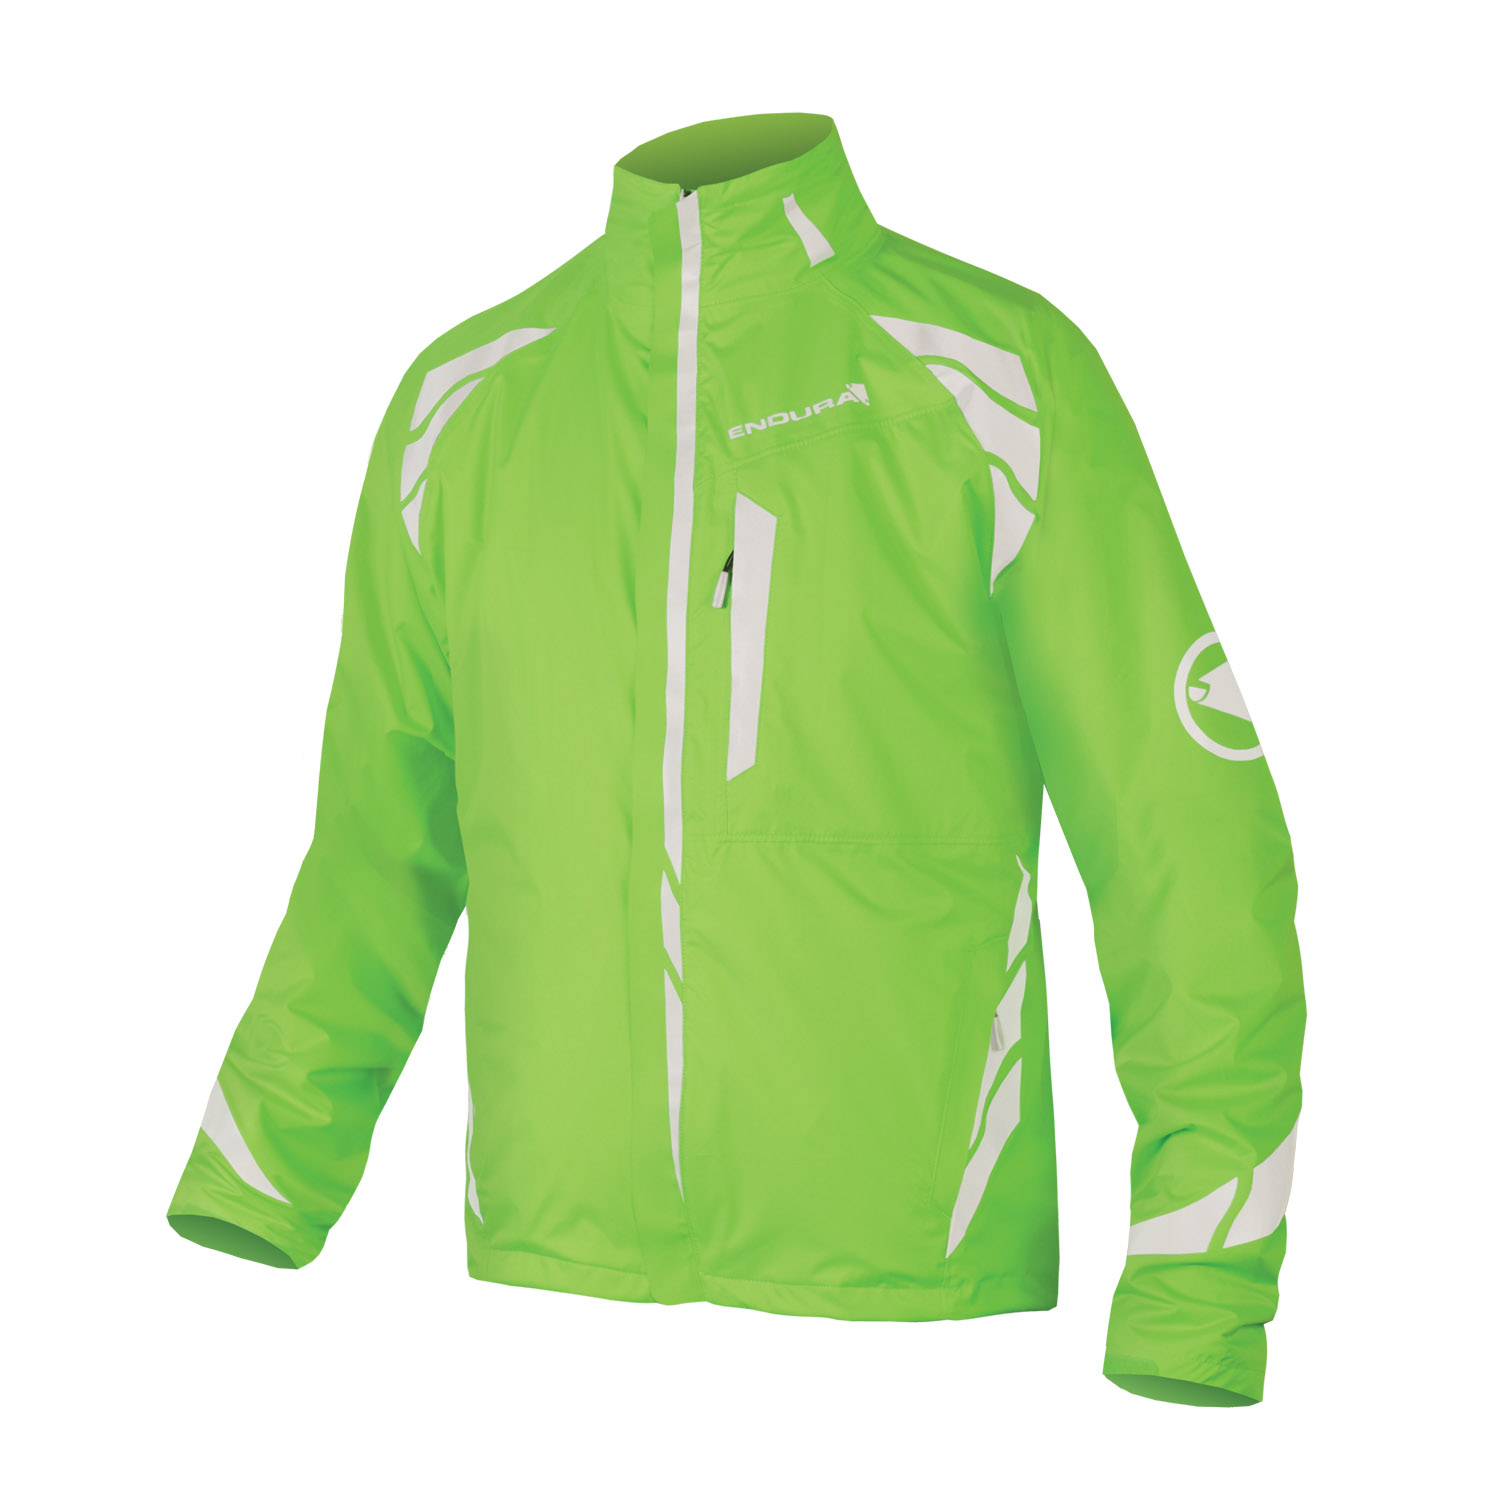 Luminite 4 in 1 Jacket